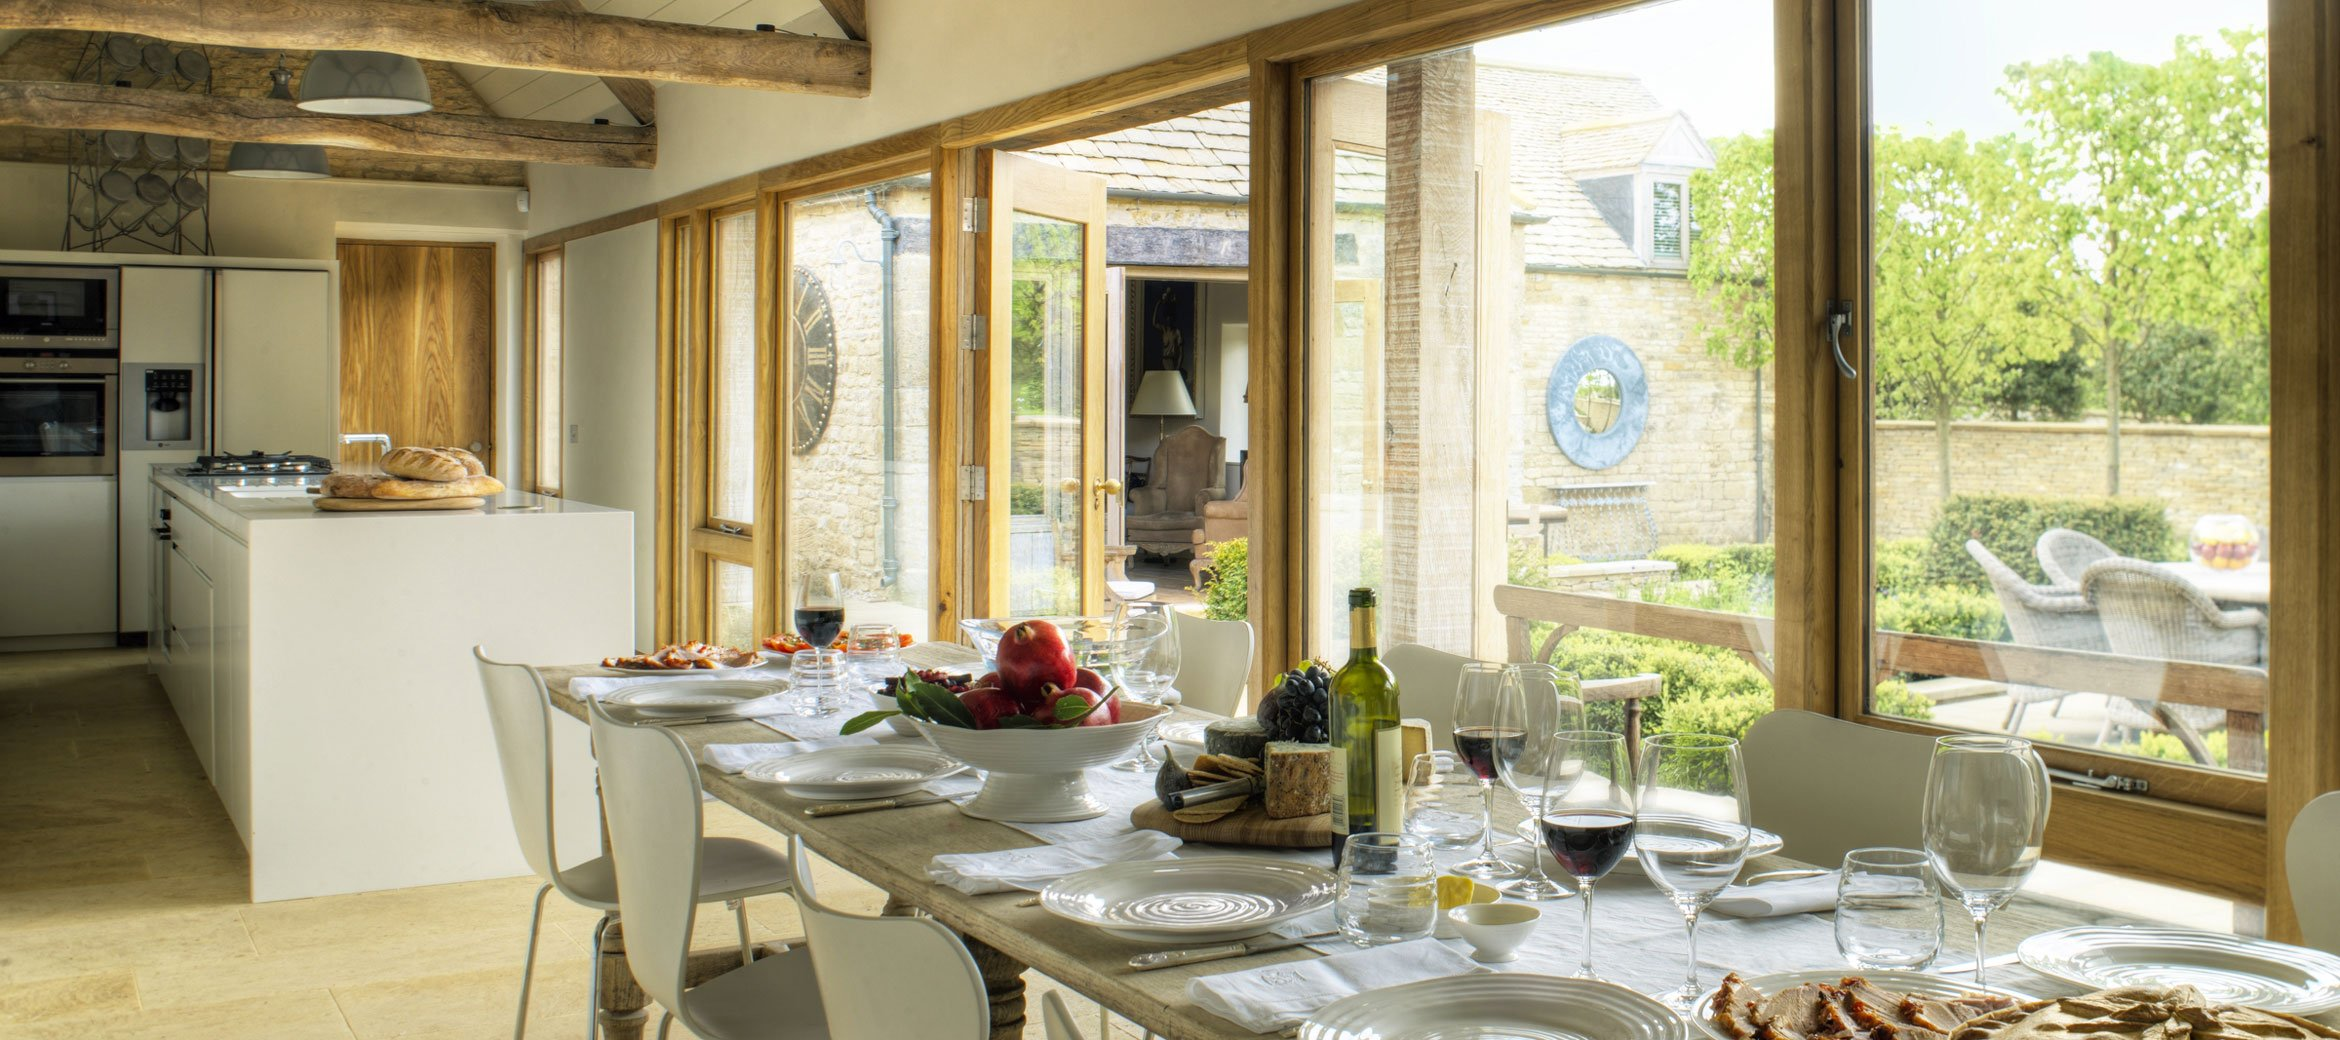 Temple-Guiting-Barn-Dining